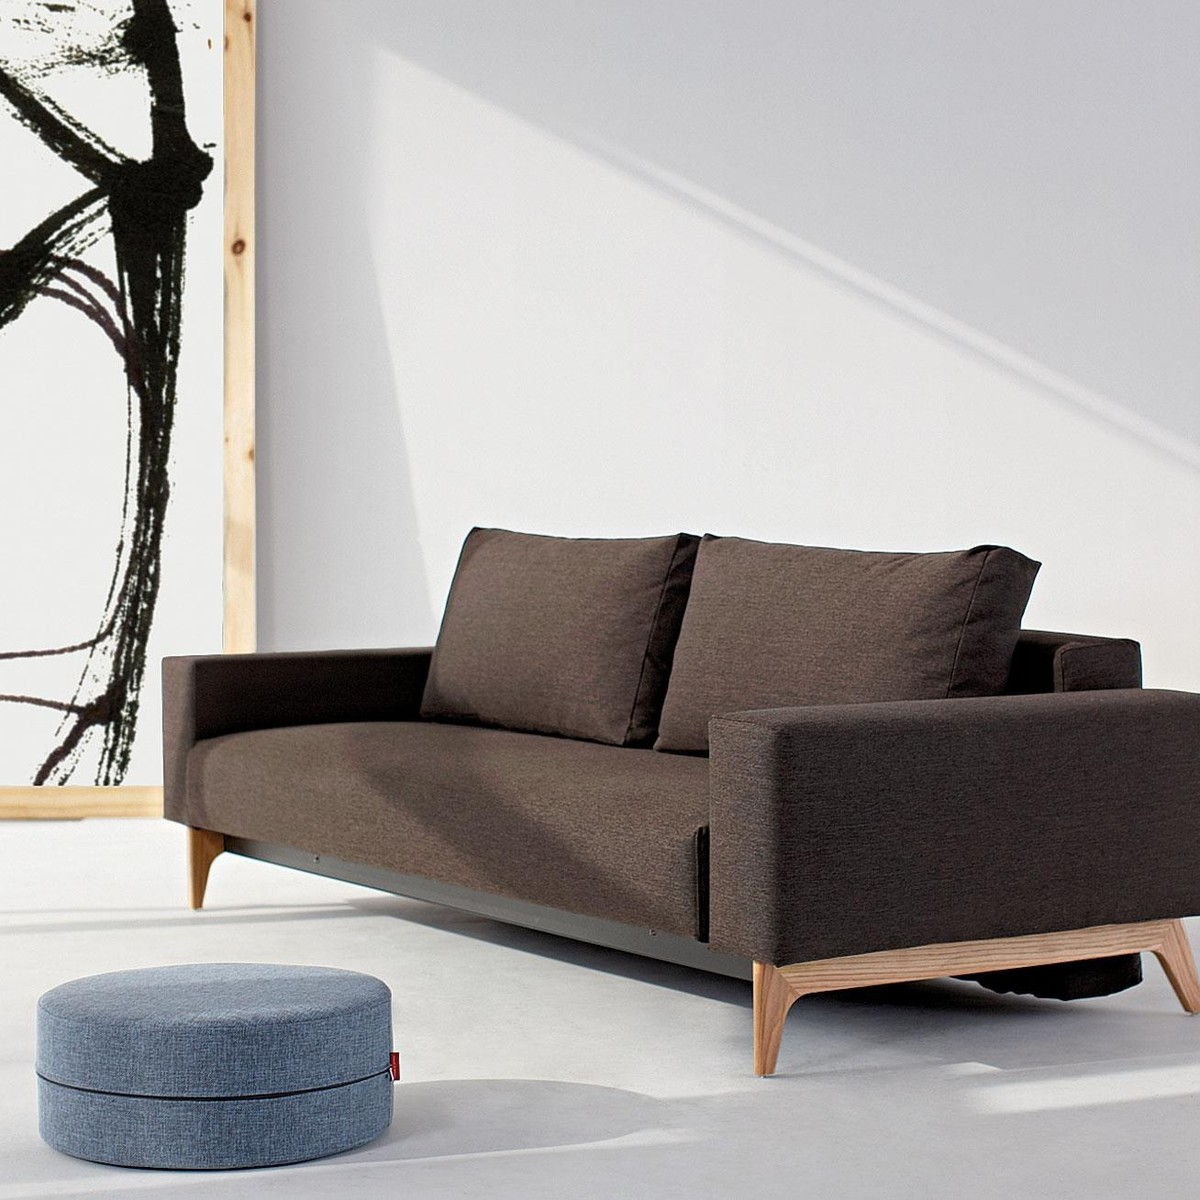 idun schlafsofa innovation. Black Bedroom Furniture Sets. Home Design Ideas